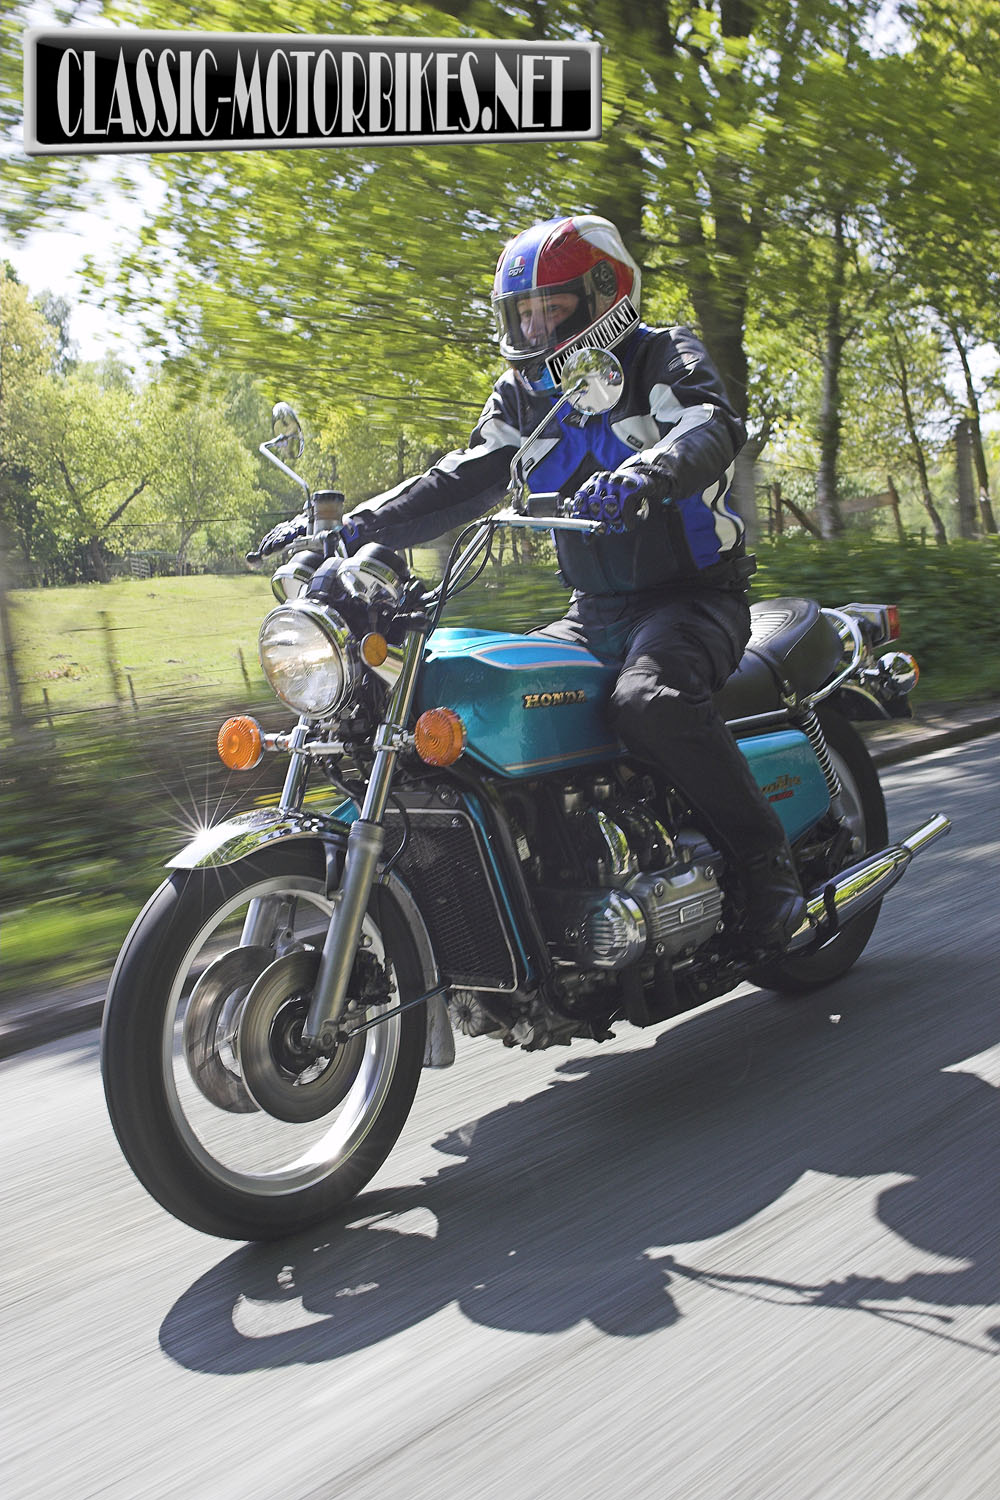 Honda GL1000 Goldwing Road Test | Classic Motorbikes